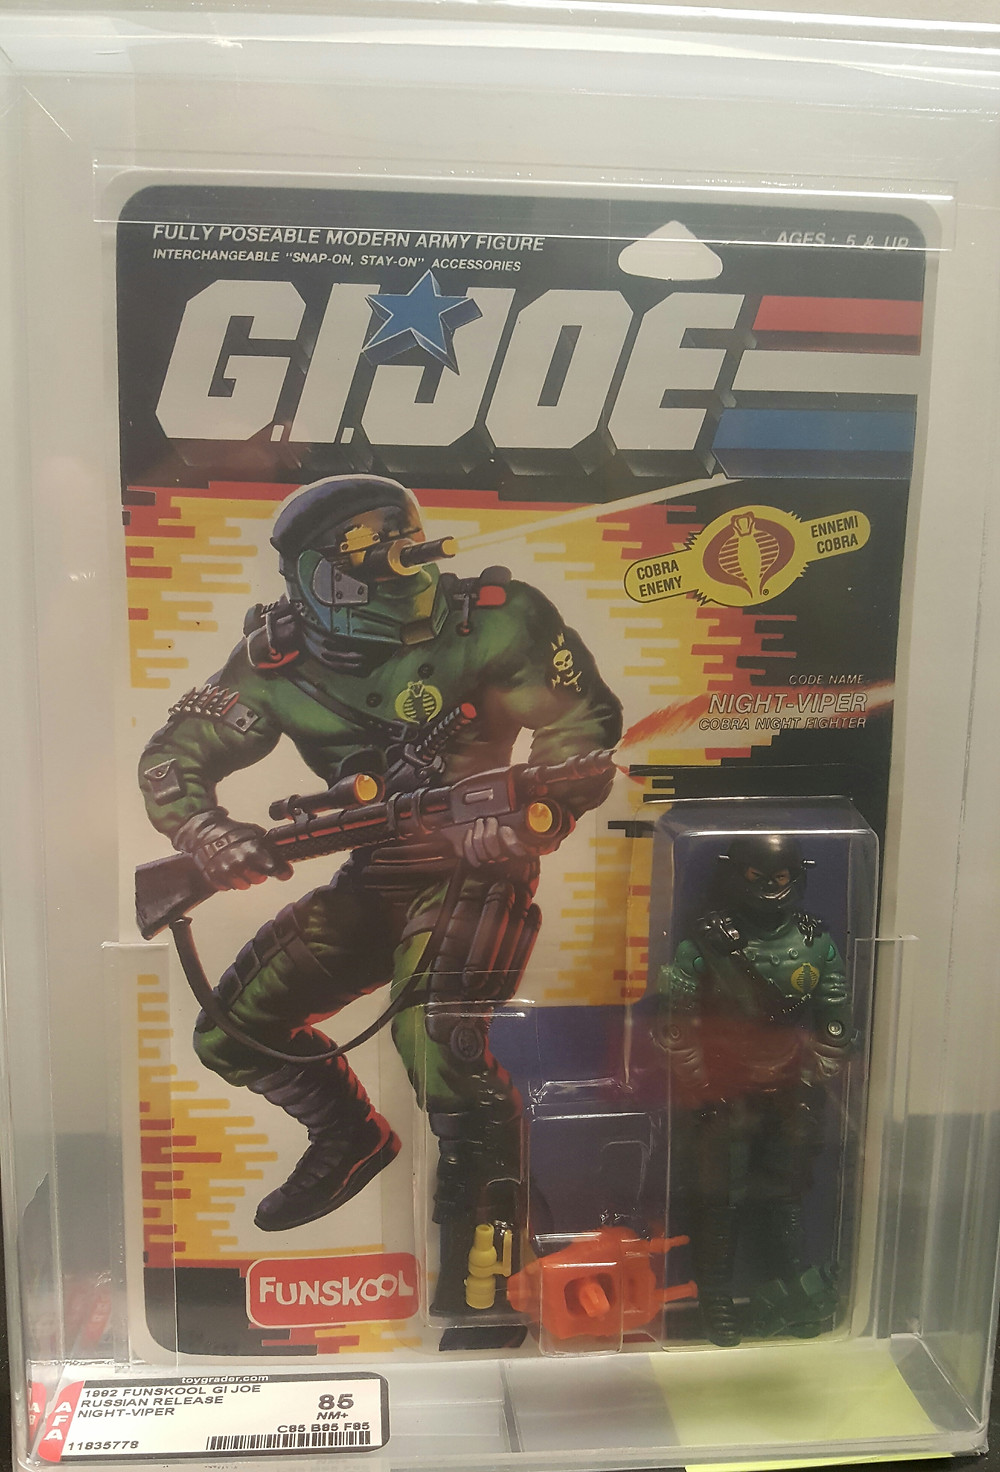 Action Figures and Toy Show Allentown Pa  http://www.valleygoto.com